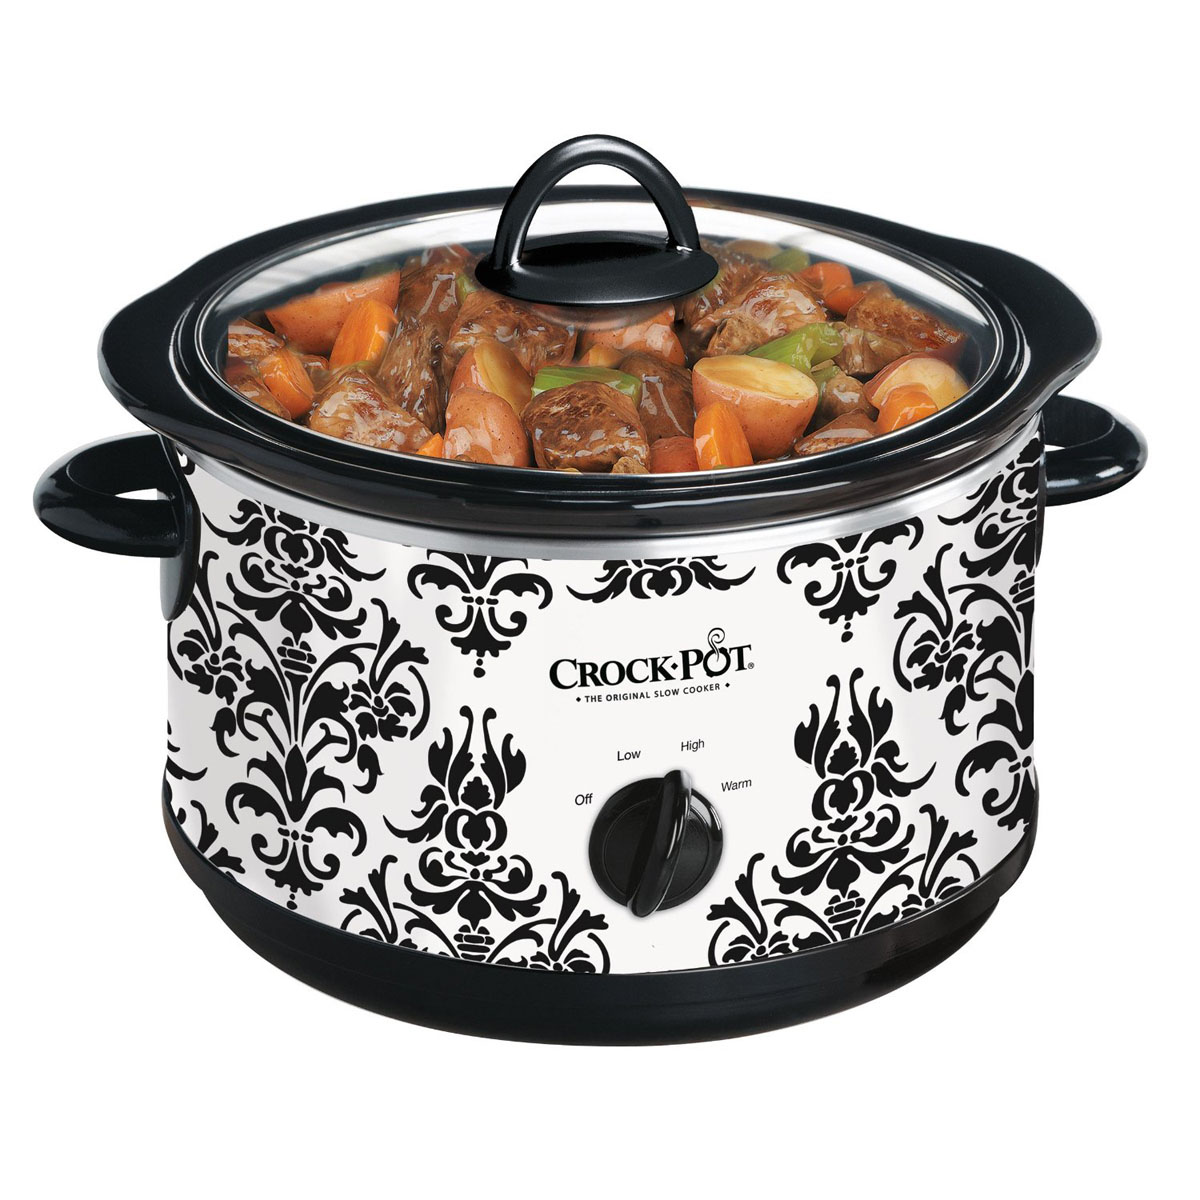 SCR450PT 033 1 crock pot� 4 5qt round manual slow cooker, damask scr450pt 033 Crock Pot Manual PDF at crackthecode.co